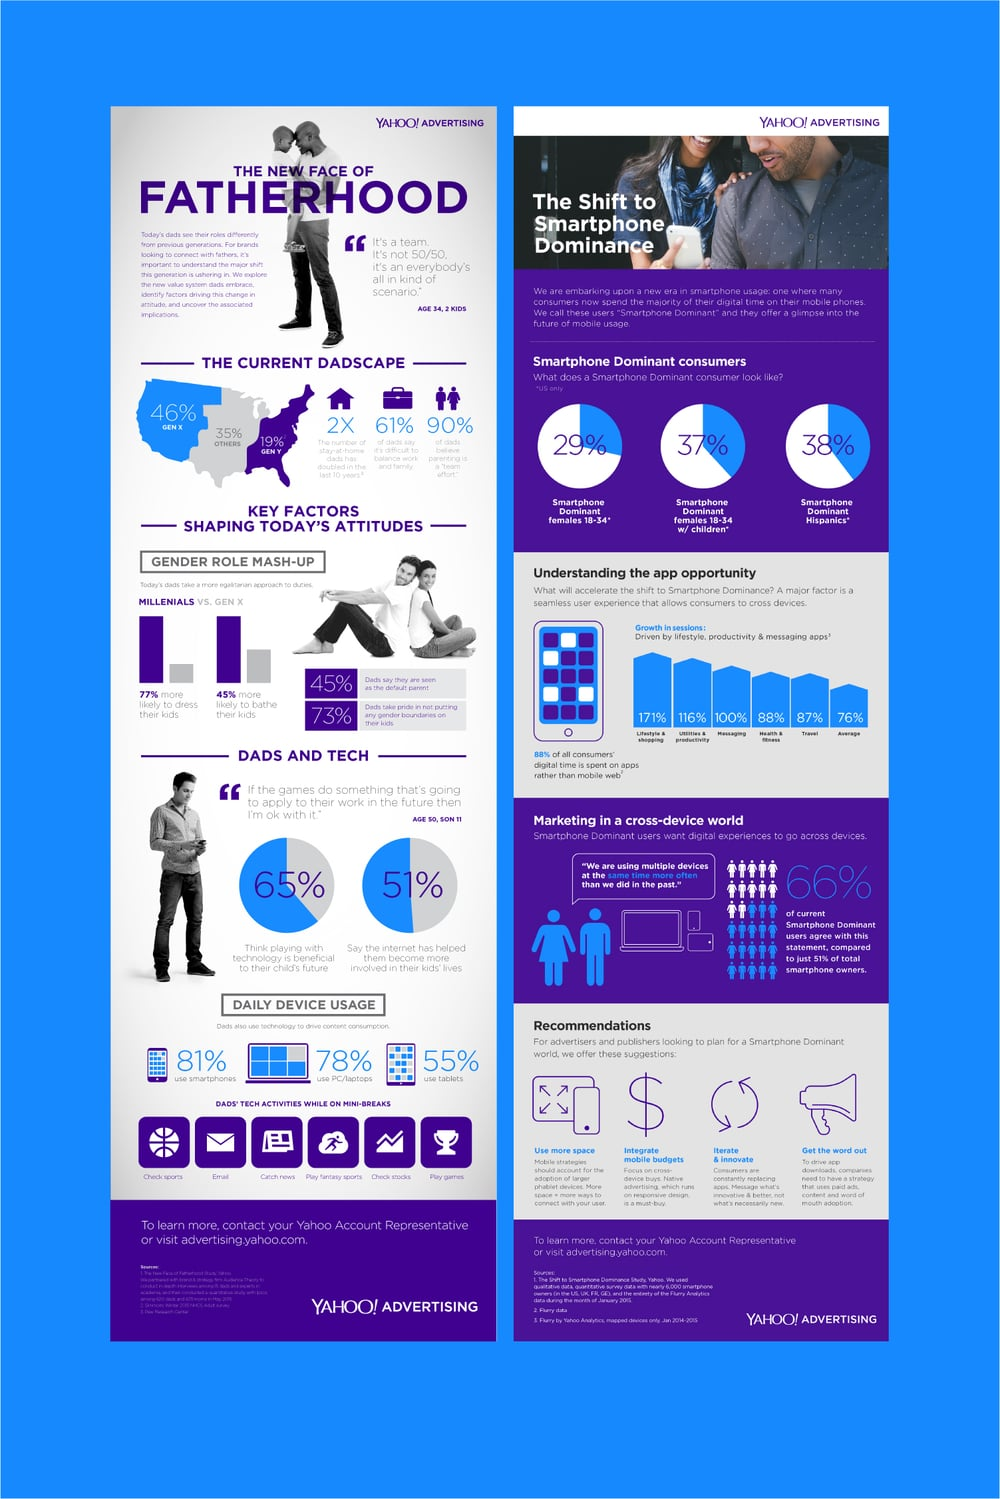 layout_CaseStudy_Yahoo_IFGX_new-02.jpg